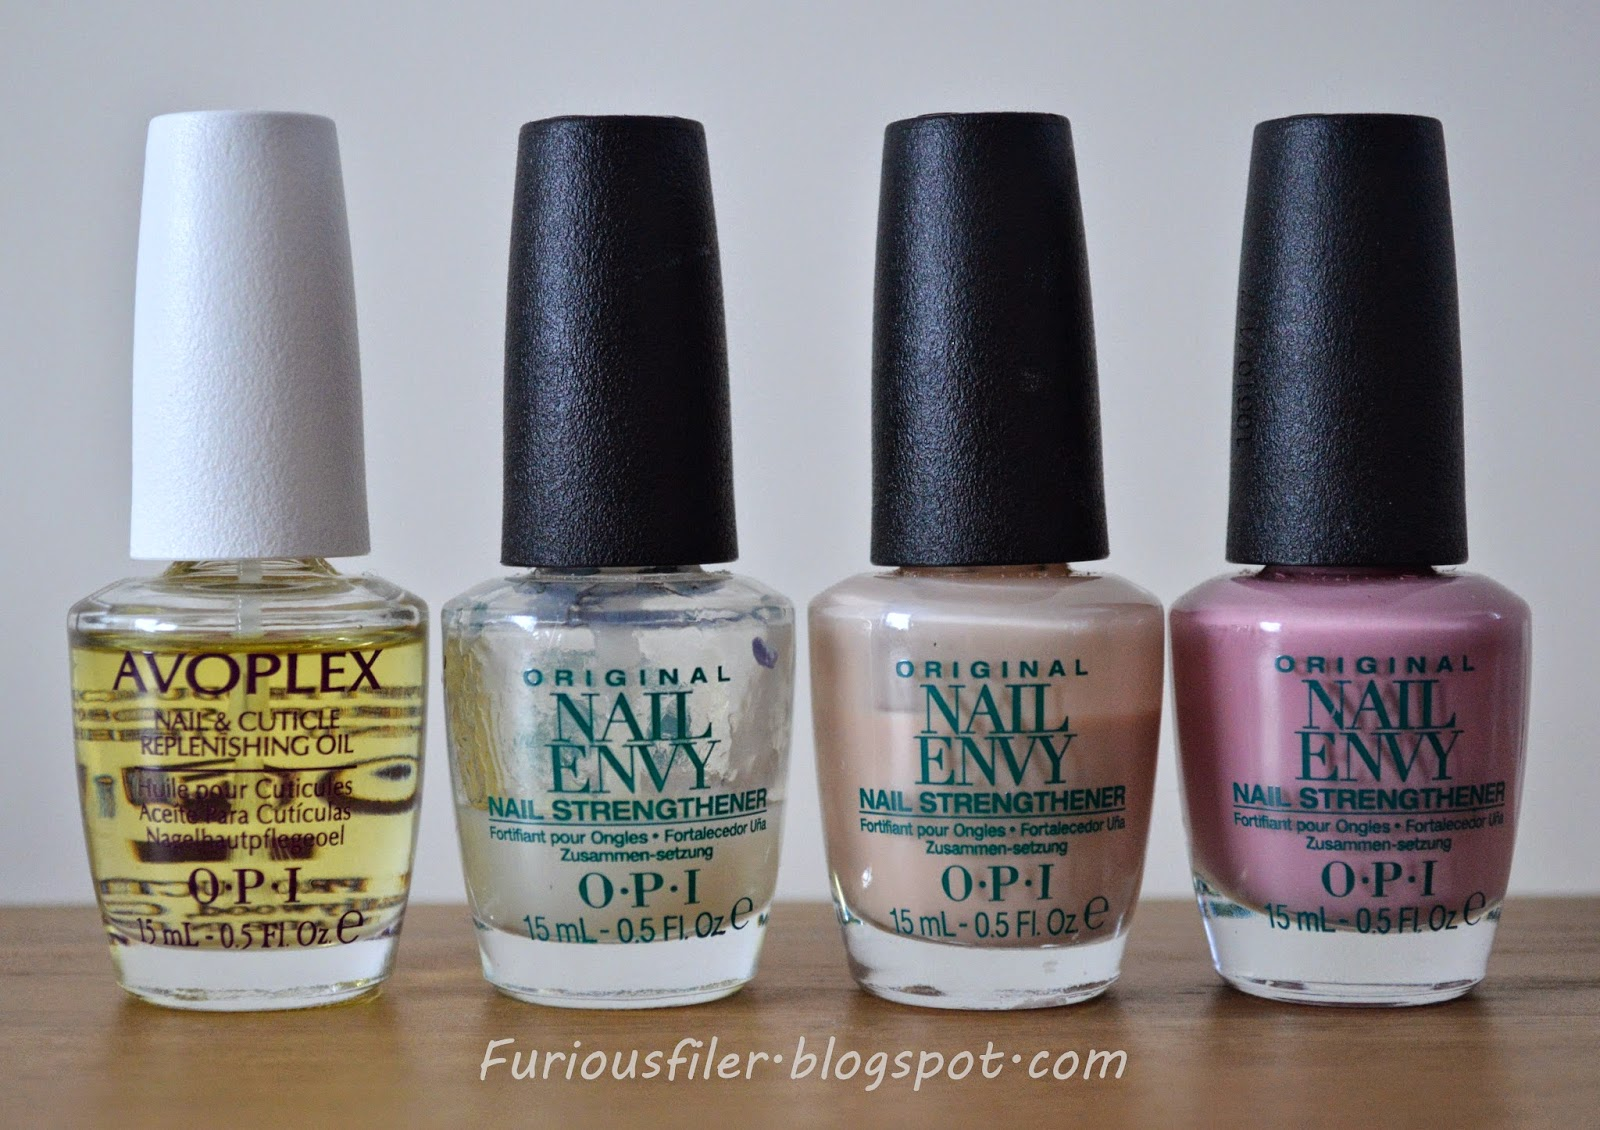 OPI Wardrobe Collection review - FURIOUS FILER